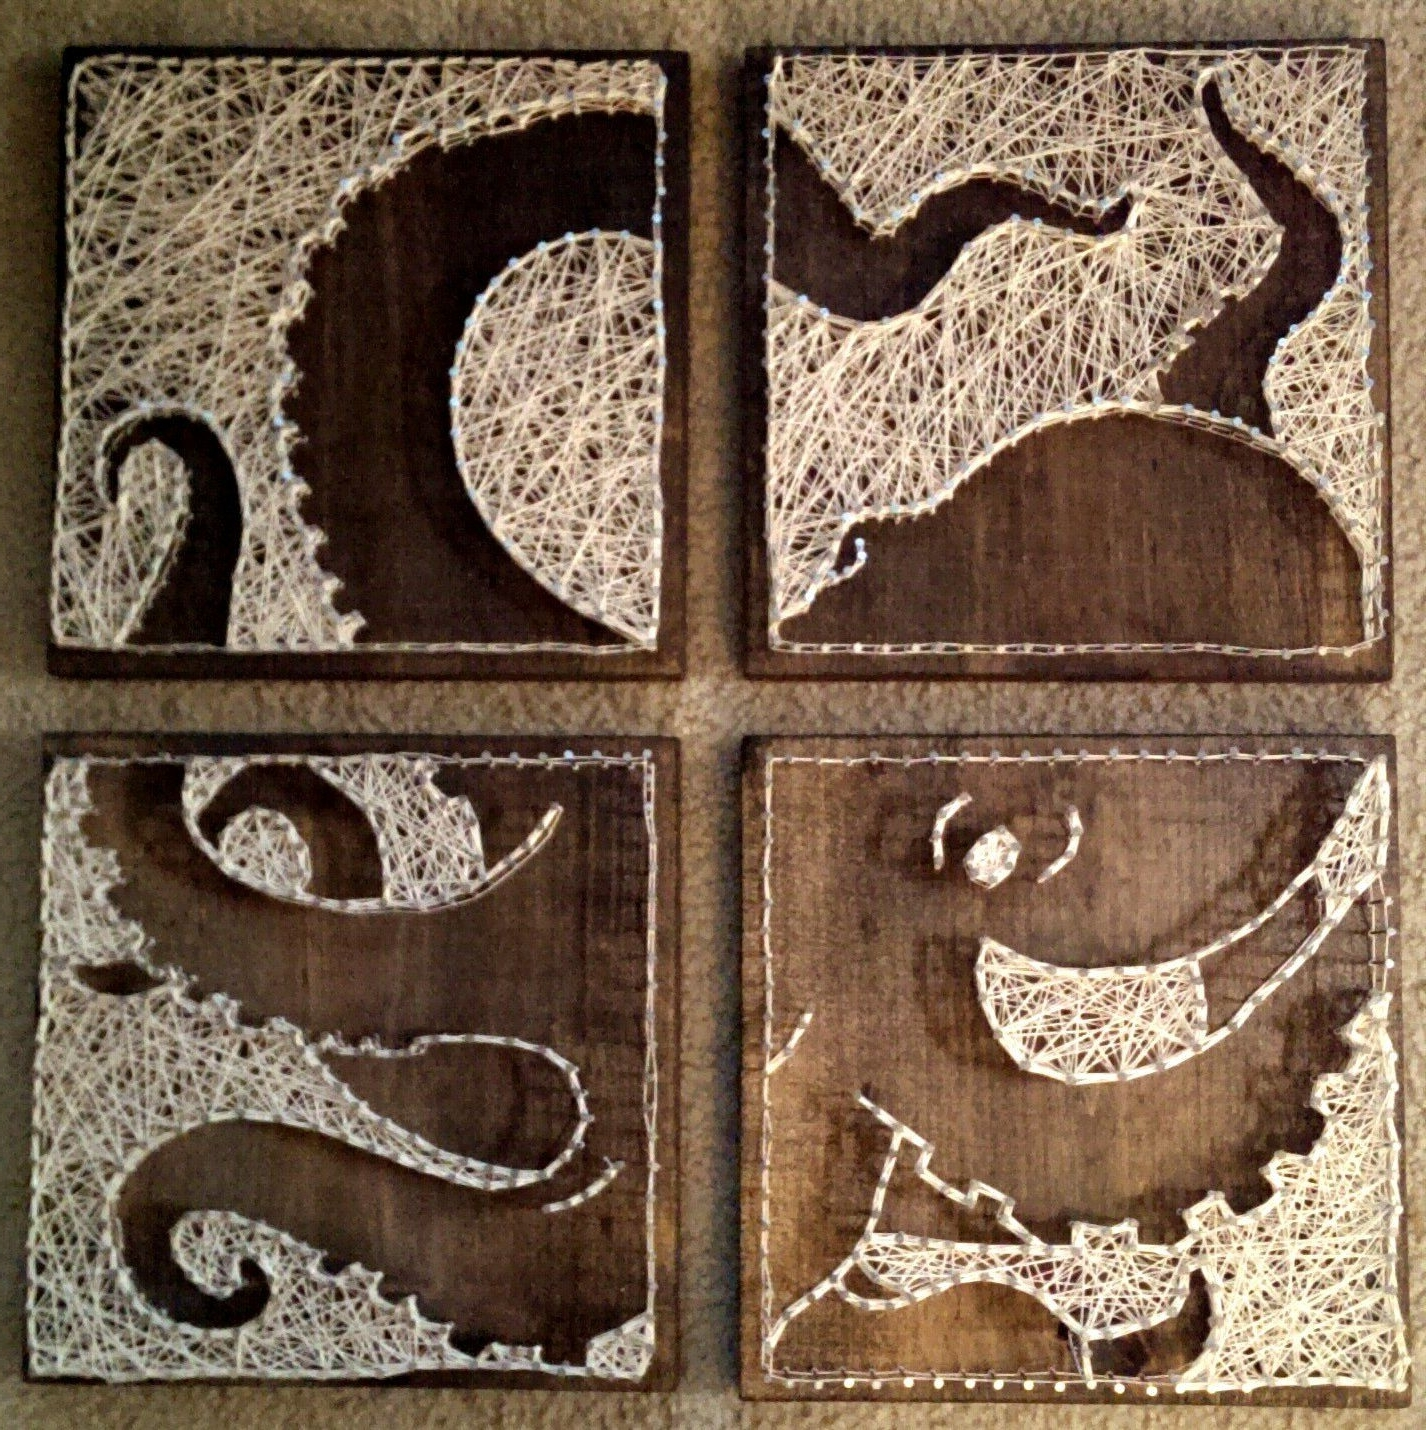 Nail And Yarn Wall Art With Regard To Preferred 4 Panel Octopus Nail And String Artbrokenwingarts On Etsy (Gallery 1 of 15)